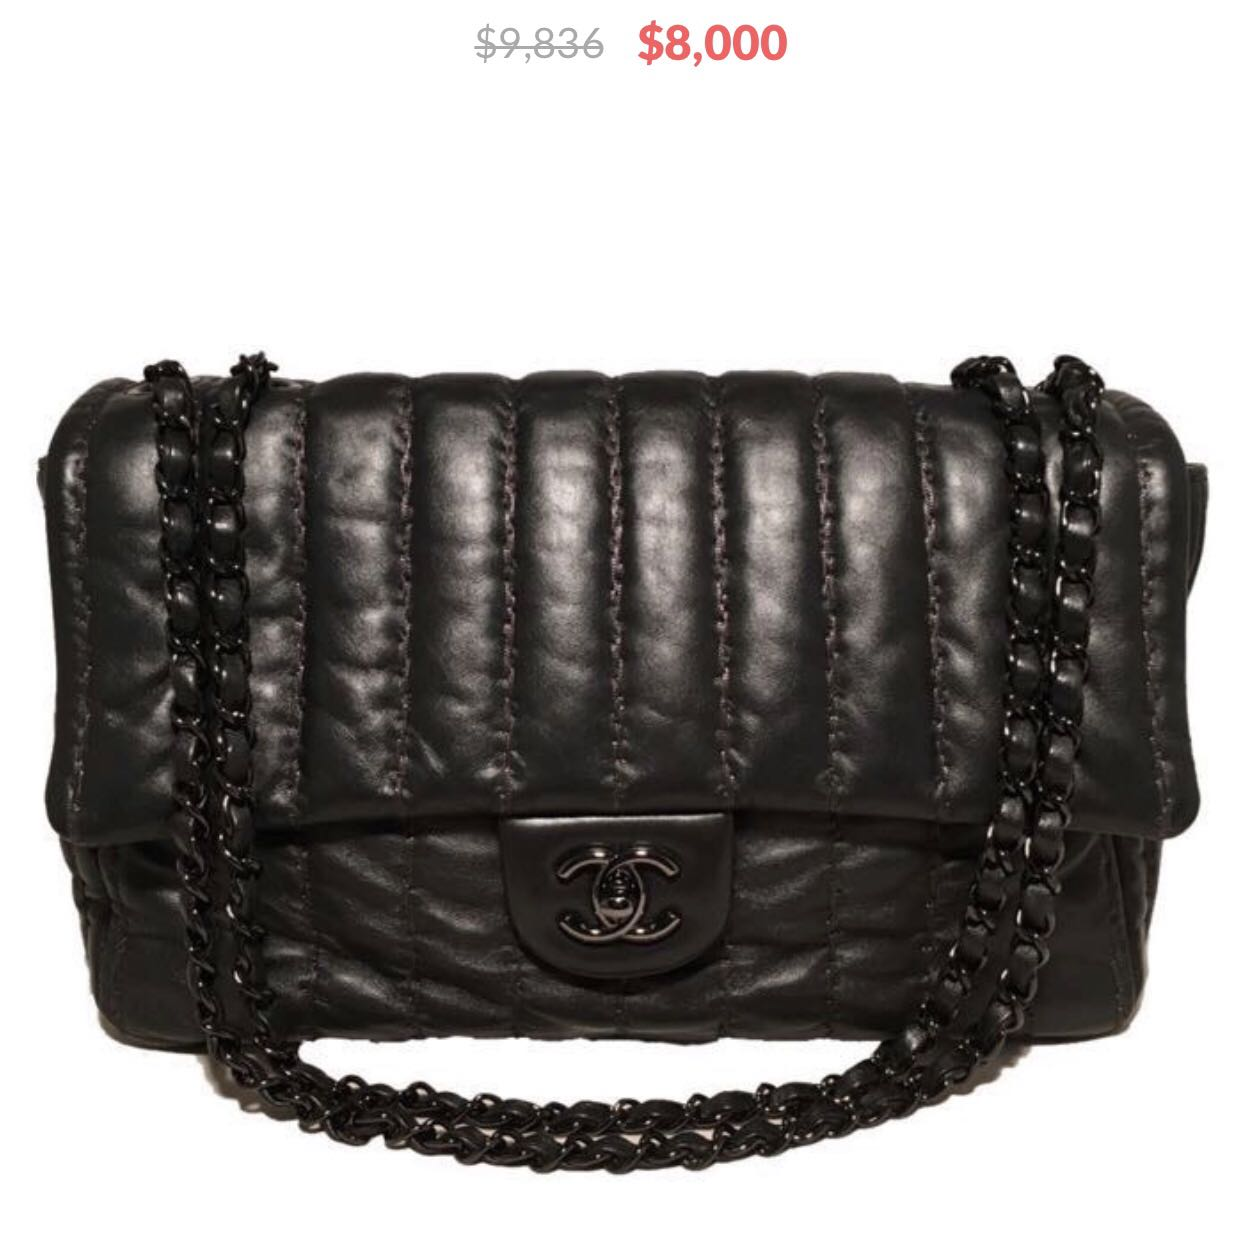 a9899ed1d6e3 Chanel Black Shimmery Leather Striped Quilted Jumbo Classic Flap, Luxury,  Bags & Wallets, Handbags on Carousell